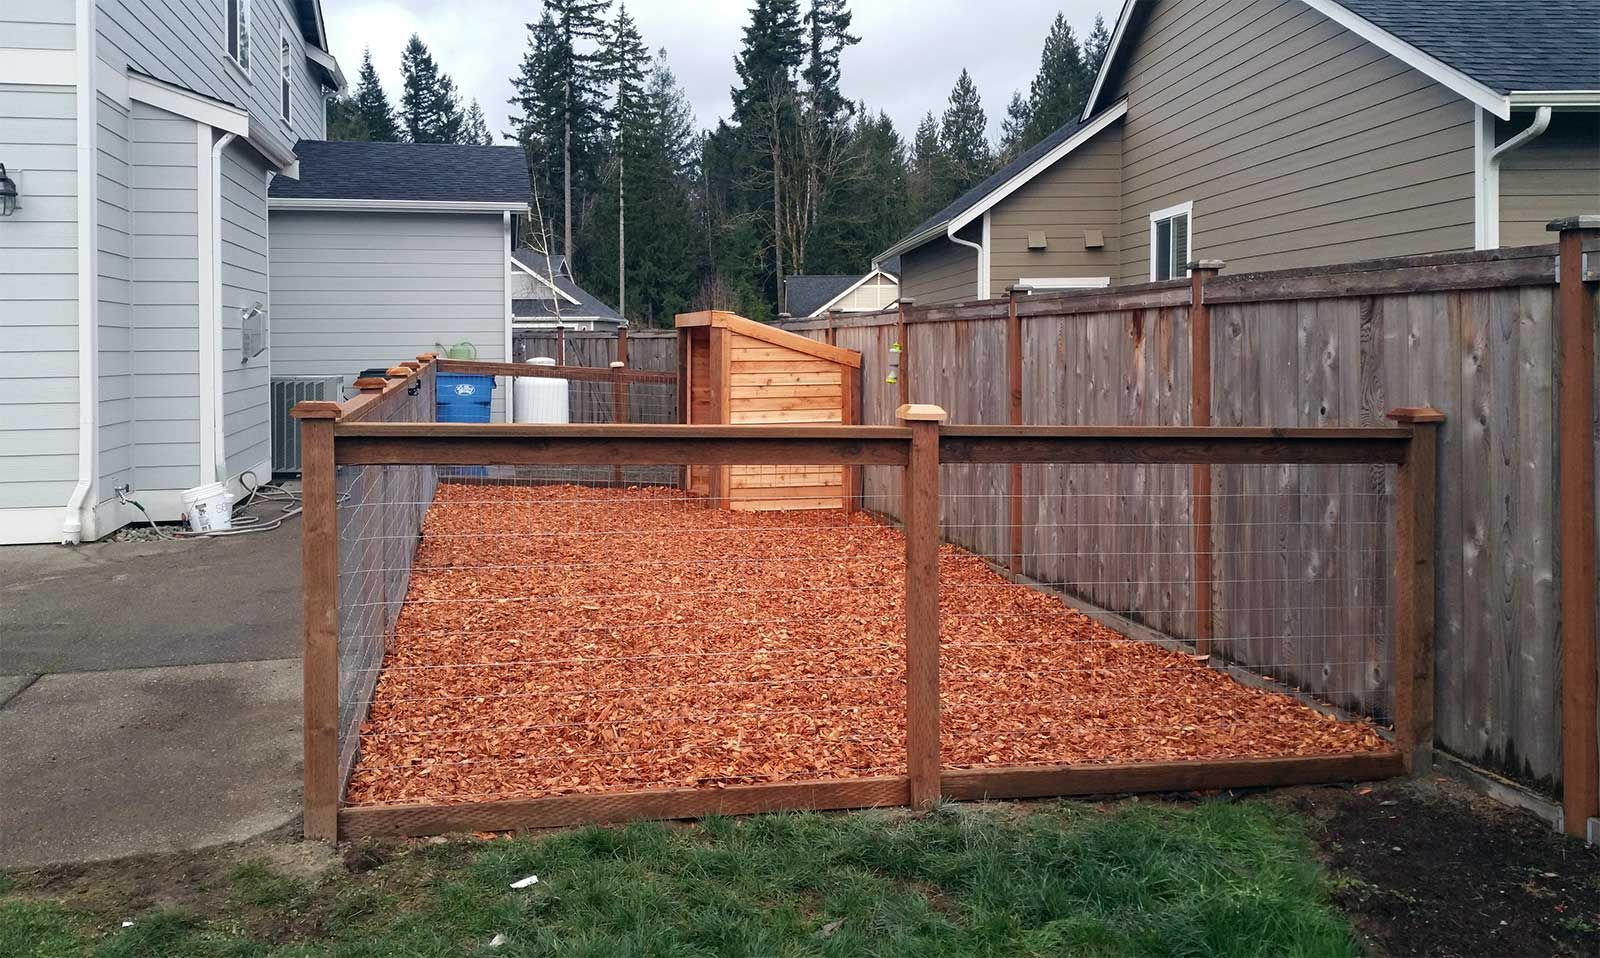 East Olympia Kennel with Cedar Chips Dog potty area, Dog